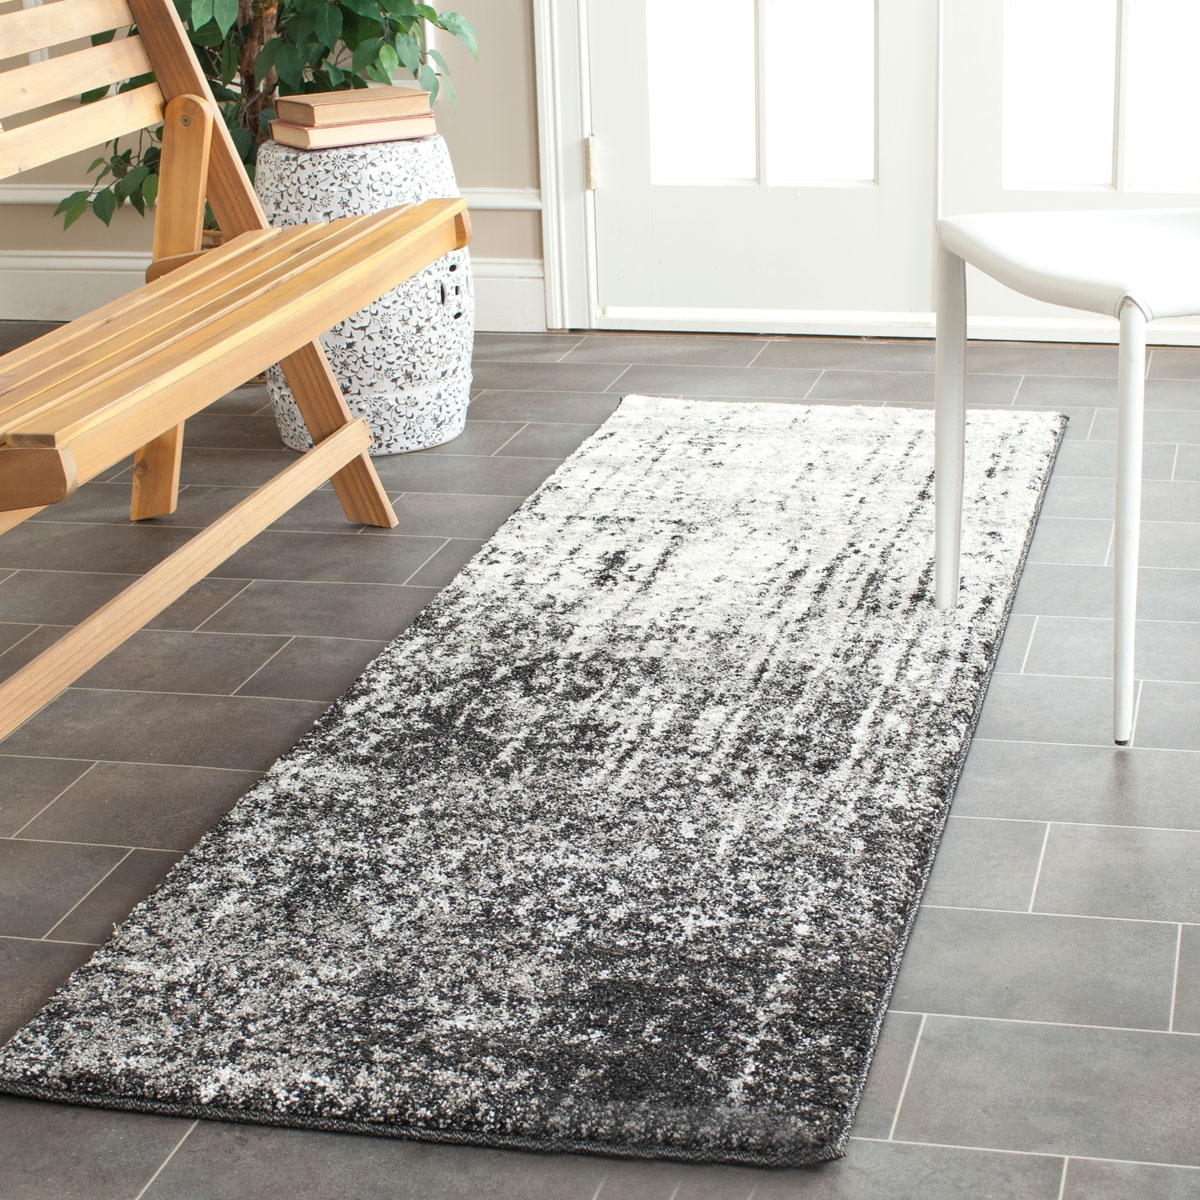 Retro Rugs Grey Black 60s Styled Area Rug Safavieh Inside Rug Runners Grey (View 14 of 20)